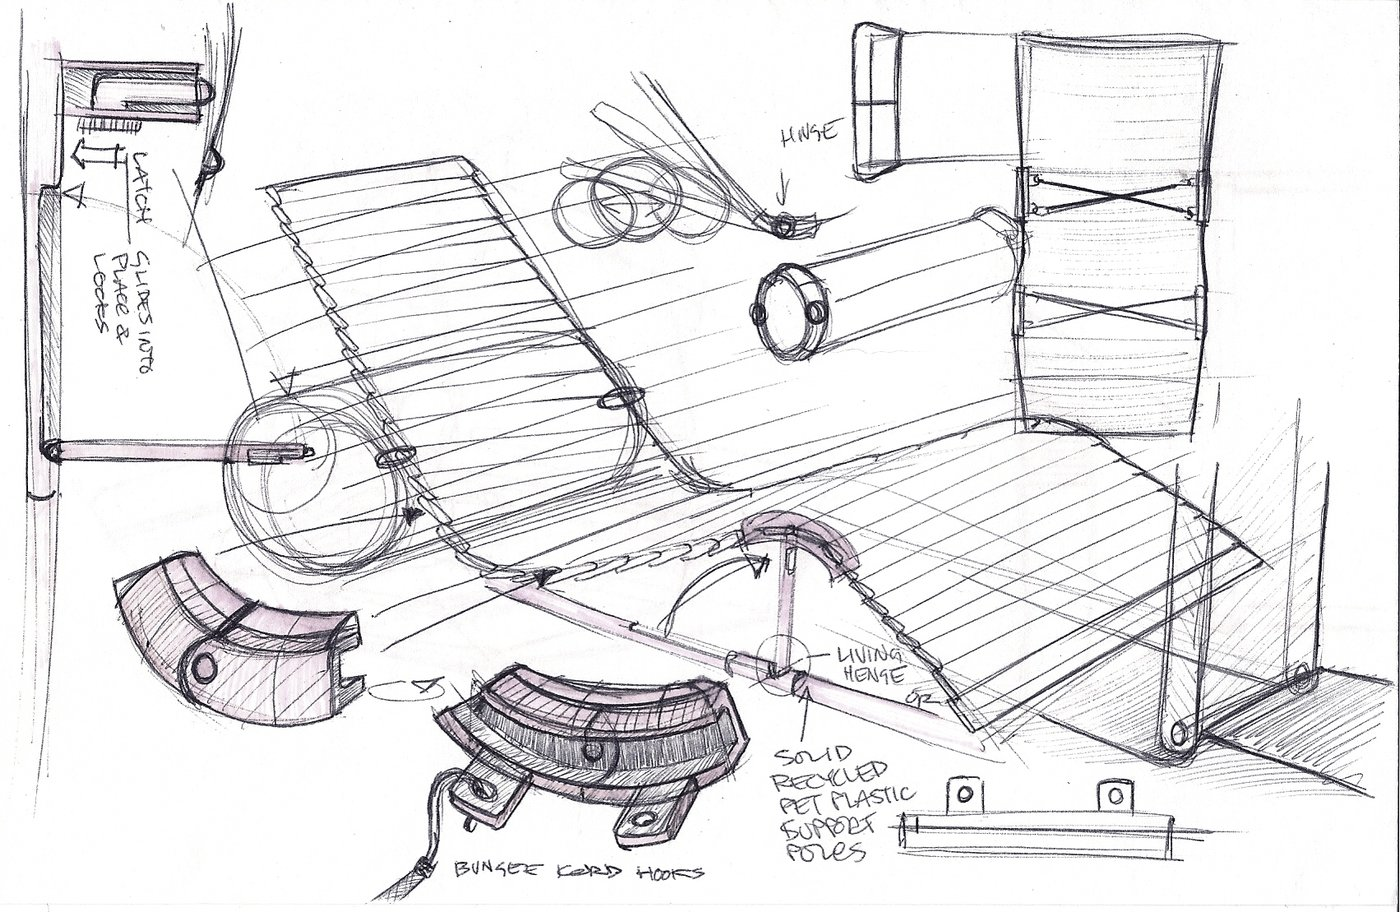 Furniture Sketches By Alton Janelle Iv At Coroflot